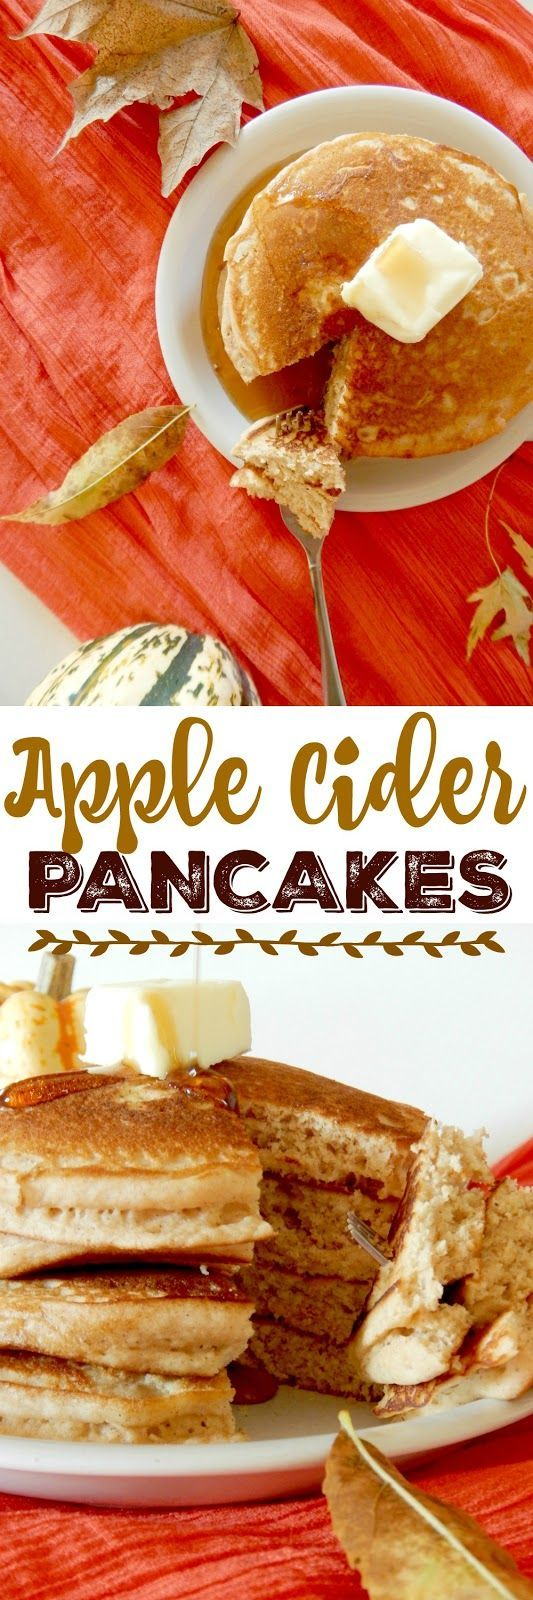 Apple Cider Pancakes...the ultimate Autumn breakfast!  Apple cider, nutmeg and cinnamon take a traditional buttermilk pancake mix up a notch to a new level.  Kid's love these pancakes!